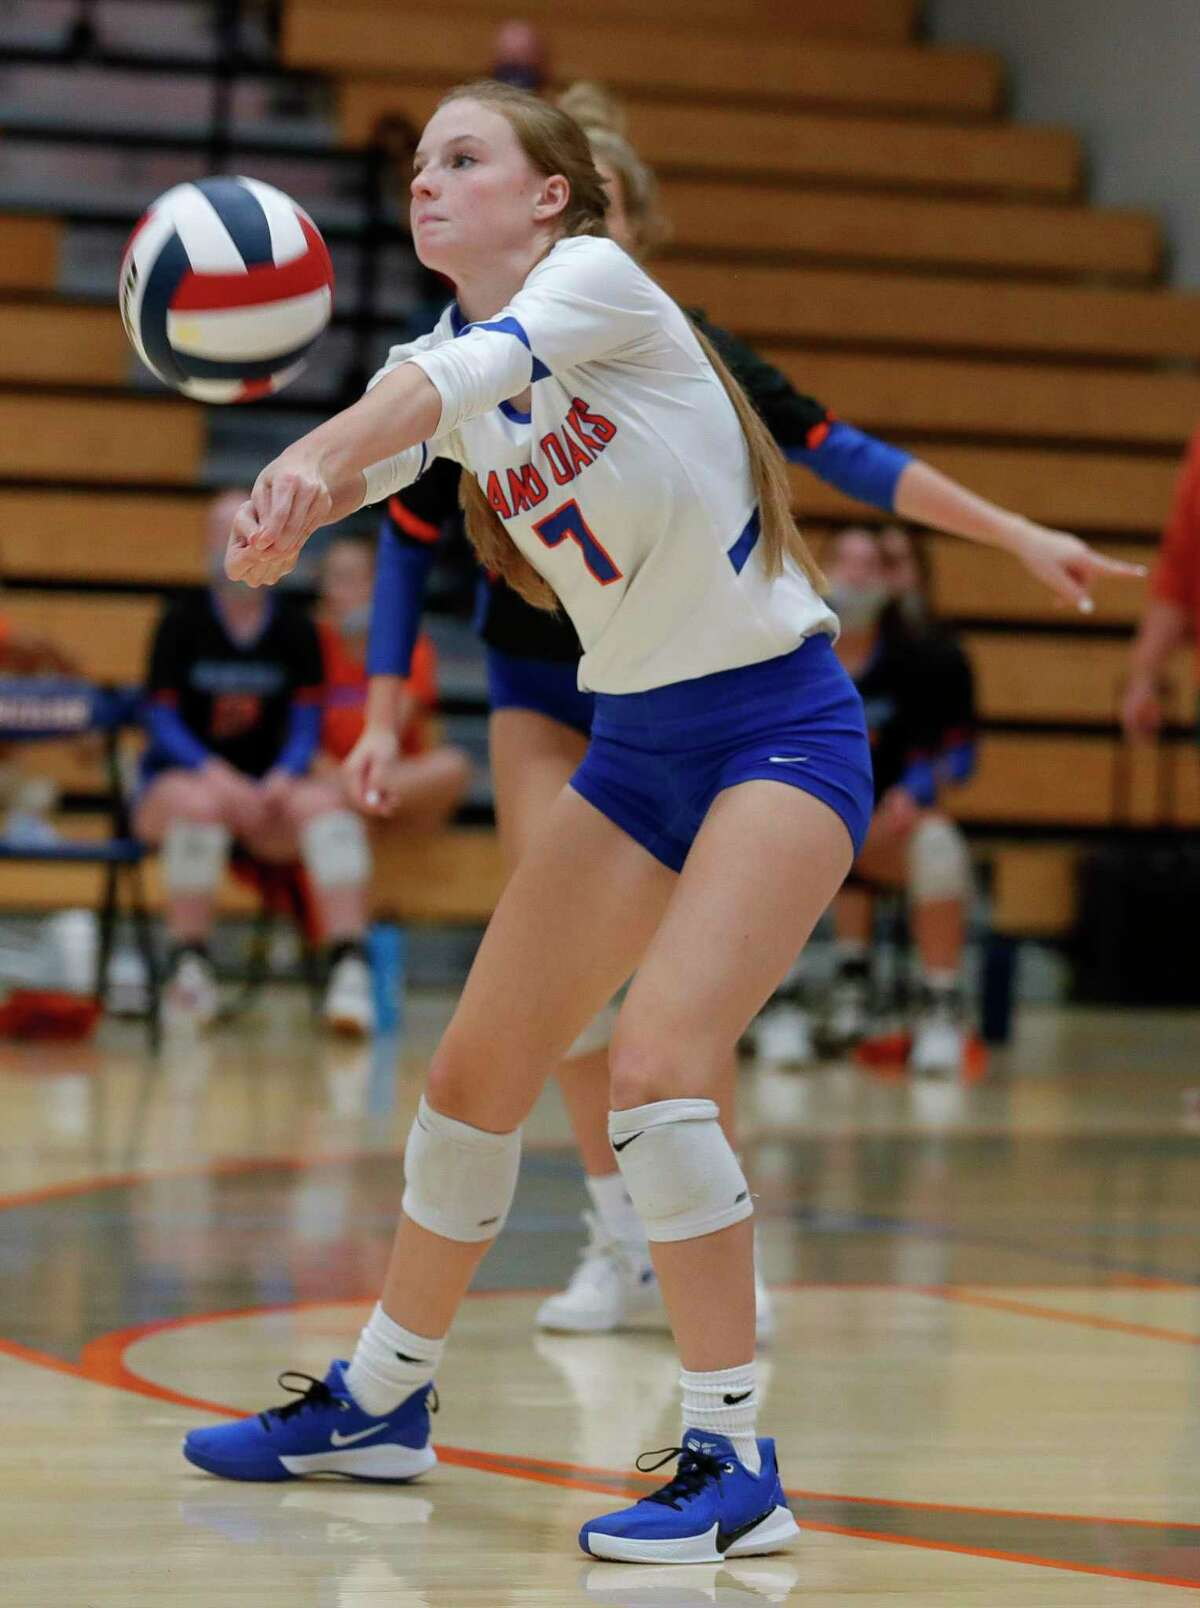 Grand Oaks libero Ava Terry (7) returns a serve during the first set of a non-district high school volleyball match at Grand Oaks High School, Friday, Sept. 18, 2020, in Spring.